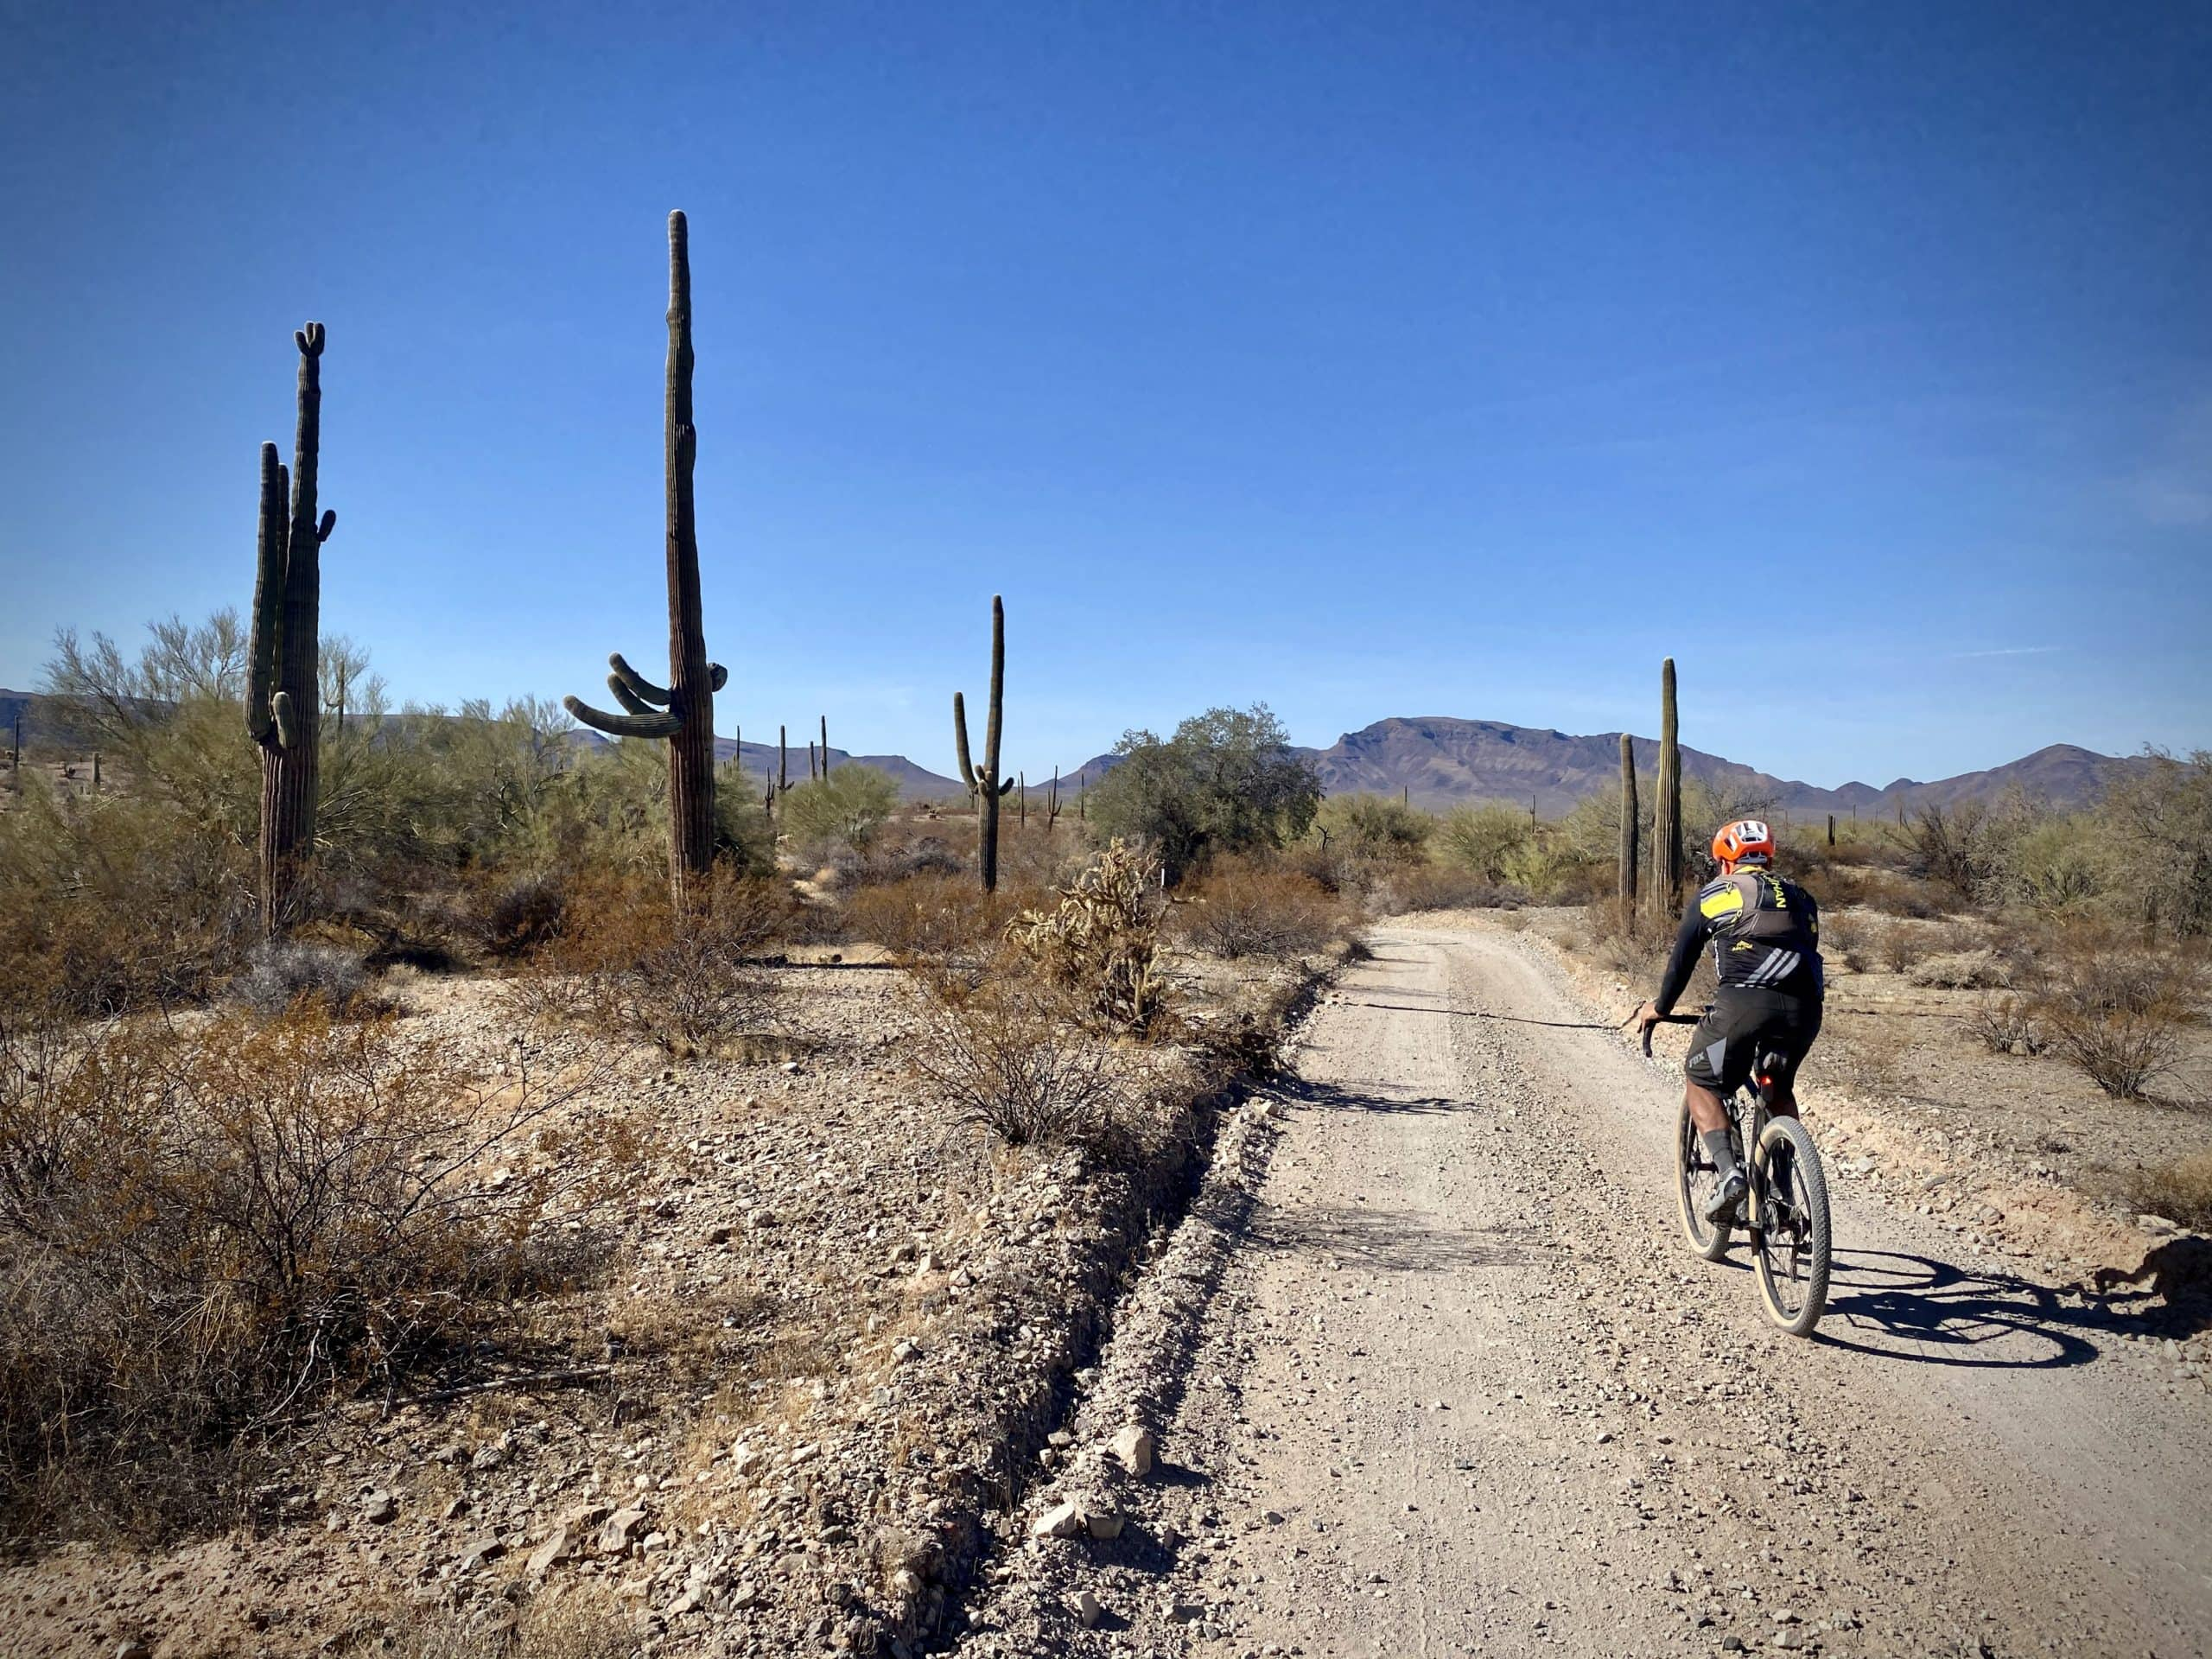 Charlie Bell road leading into Daniel's Arroyo where the desert is barre and dry.